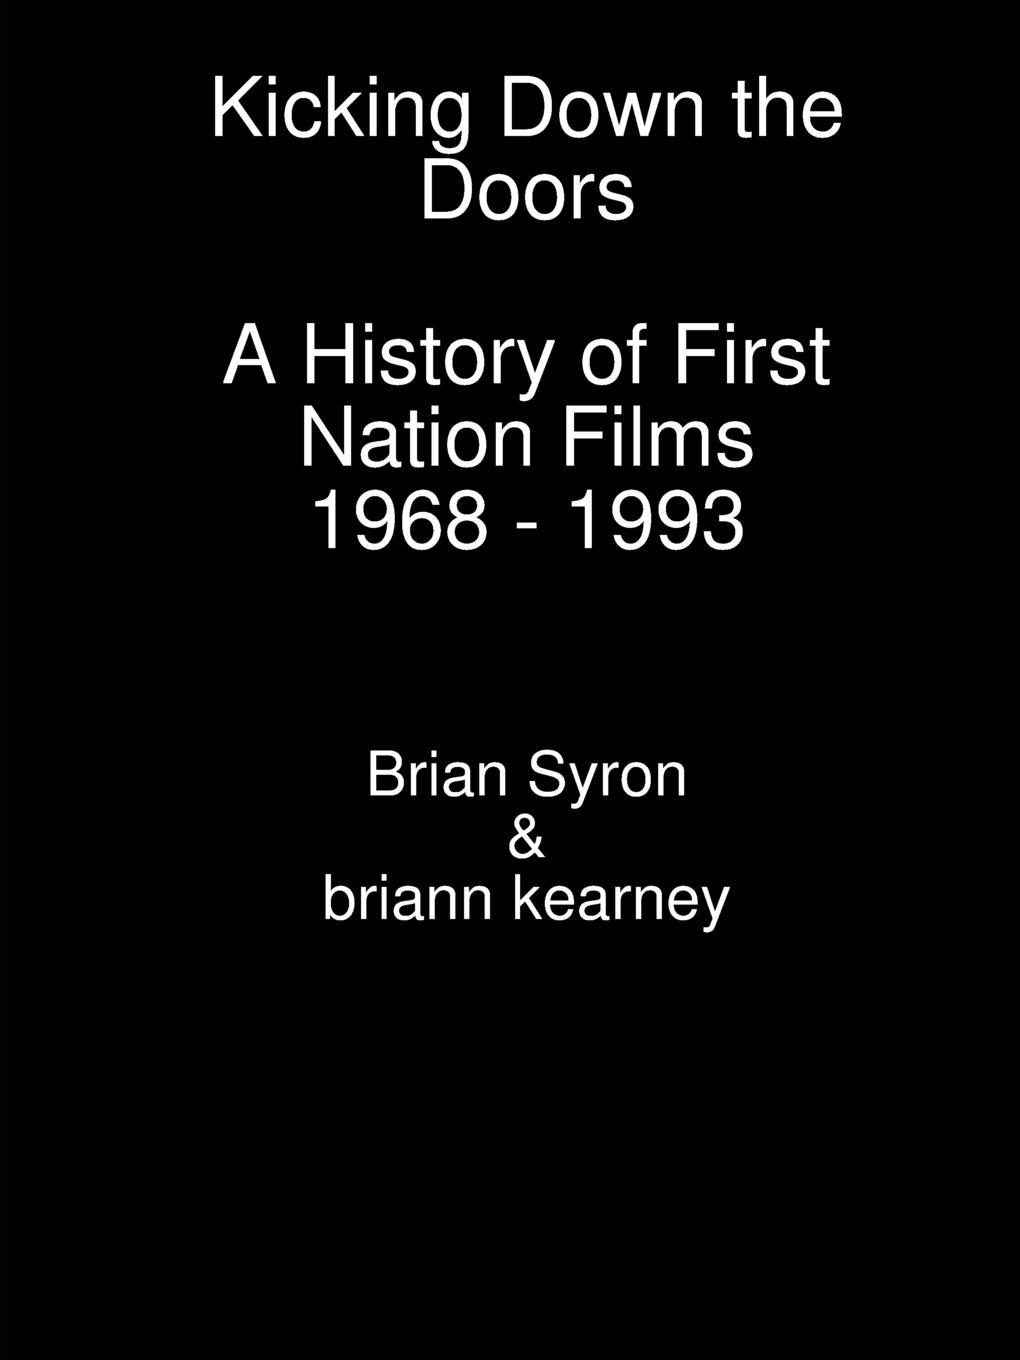 briann kearney, Brian Syron Kicking Down the Doors the australian voices гордон гамильтон the australian voices